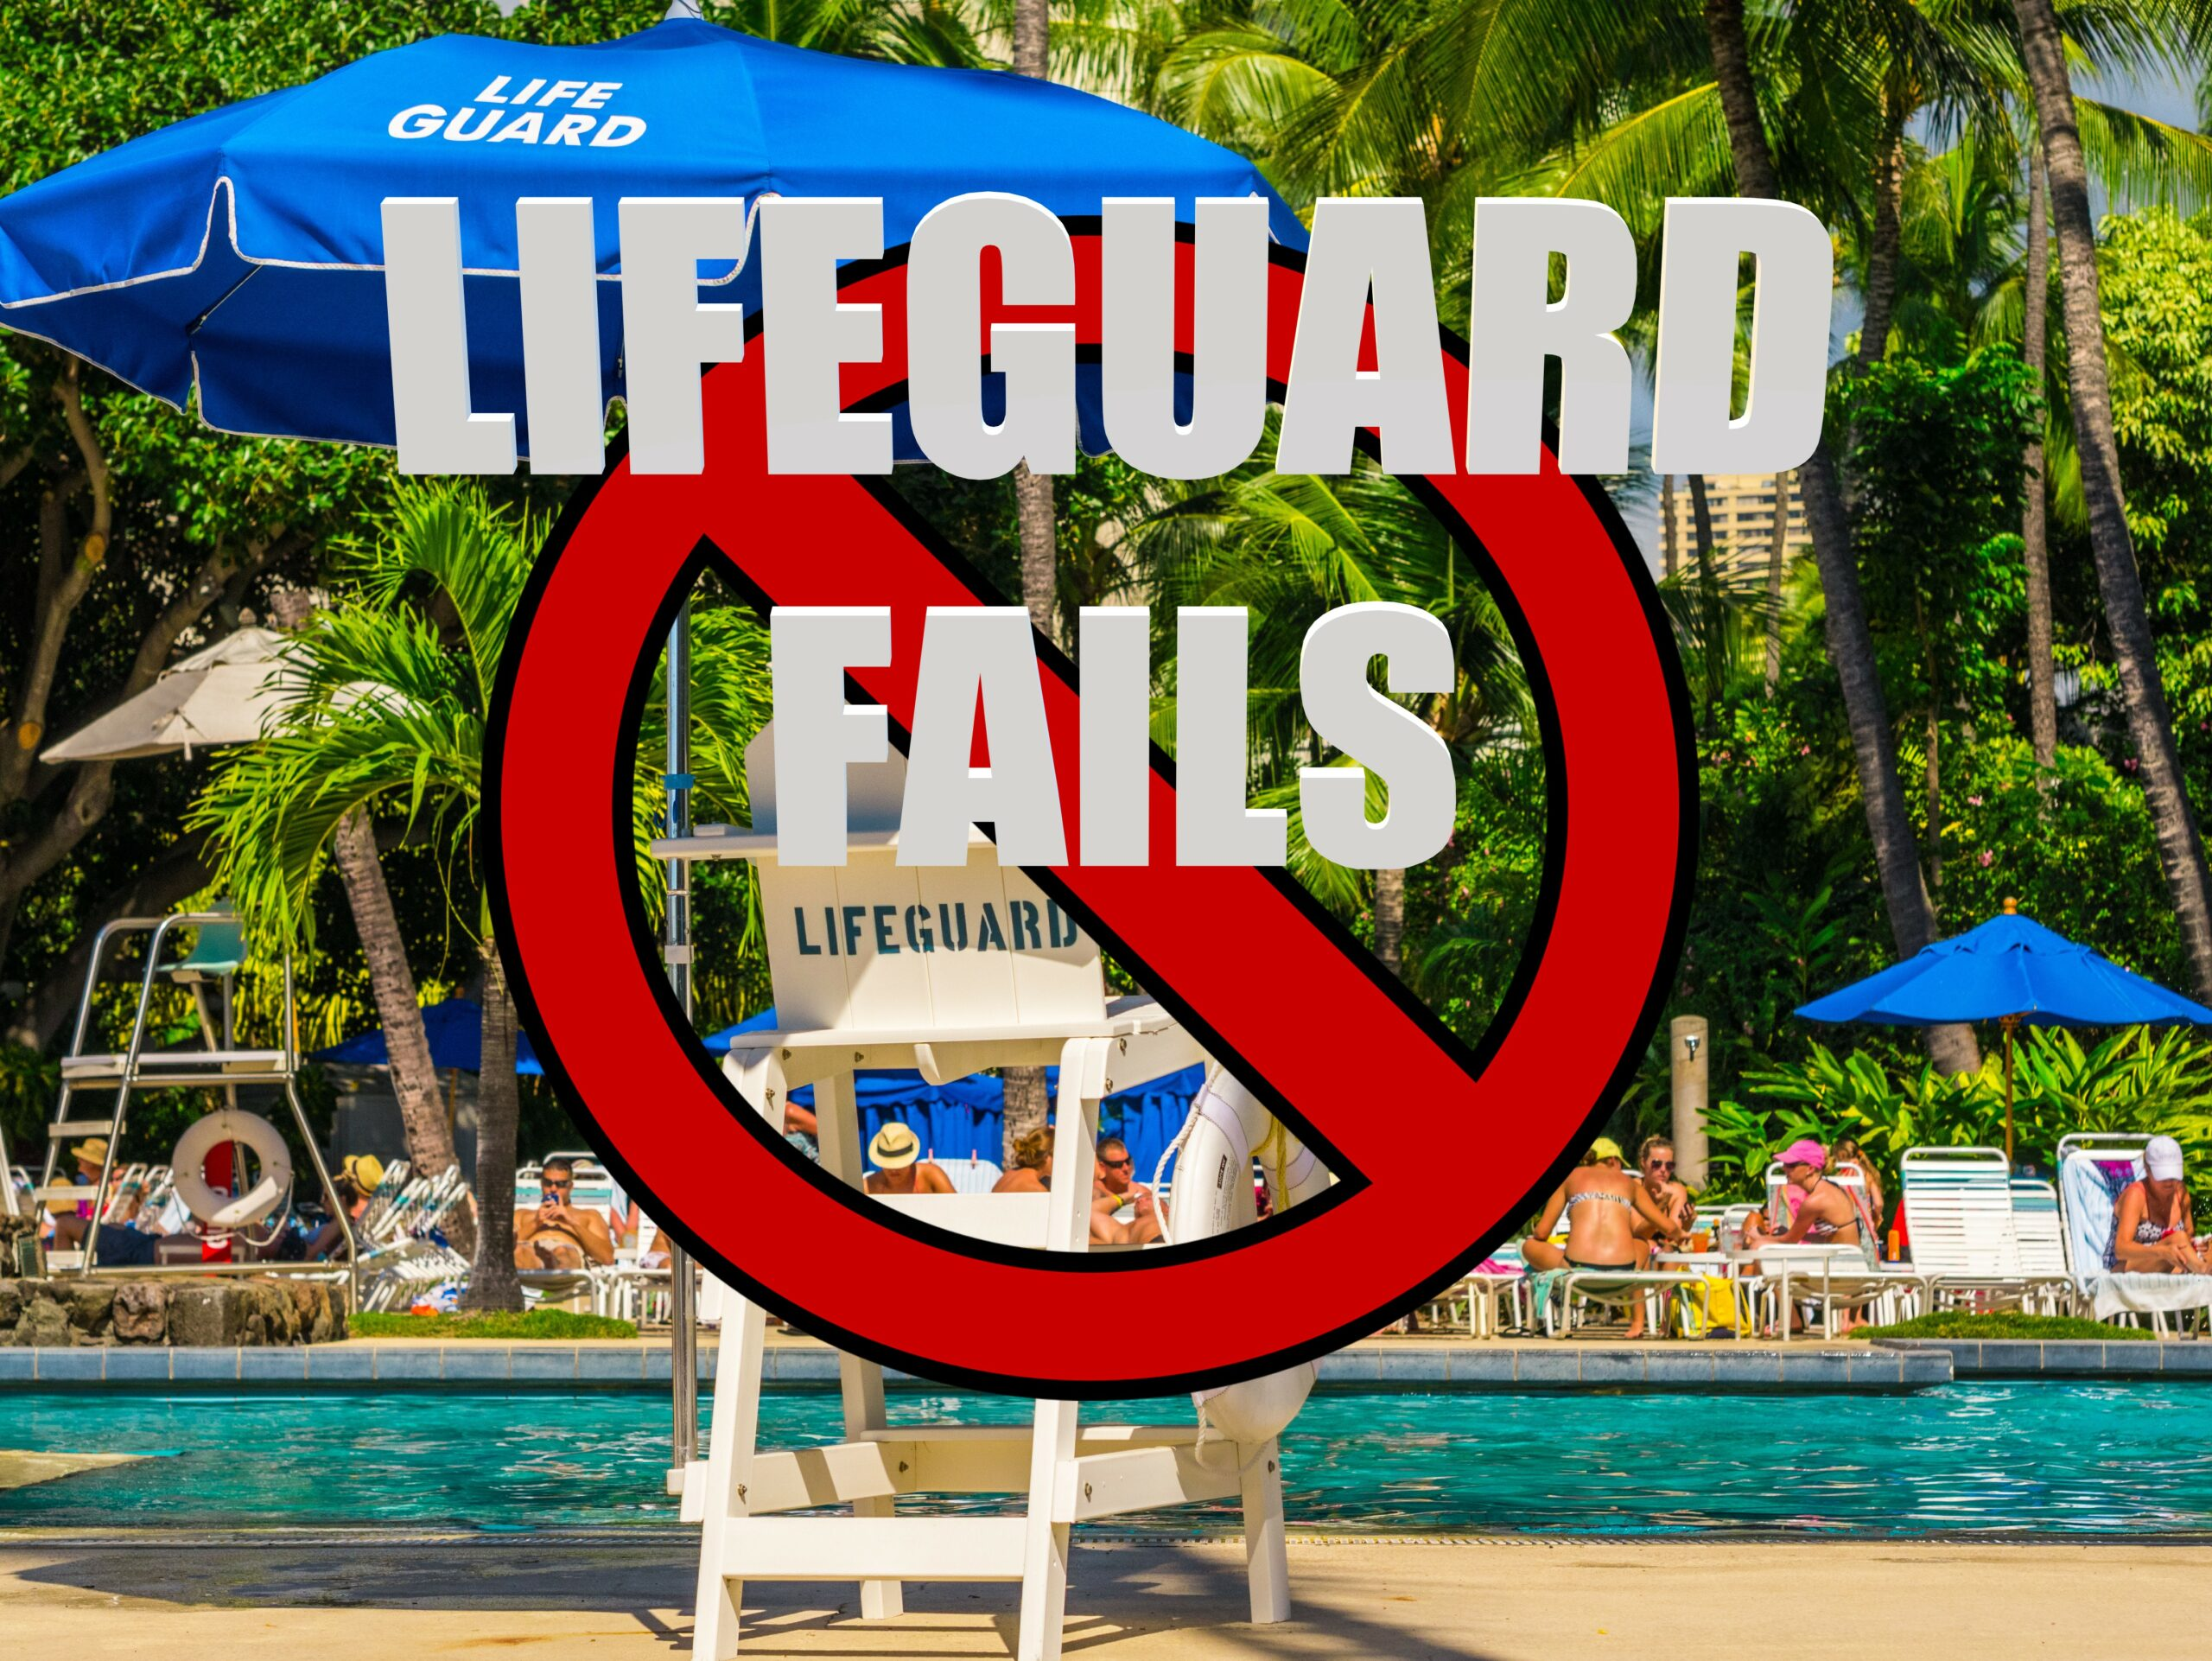 LIFEGUARD FAILS